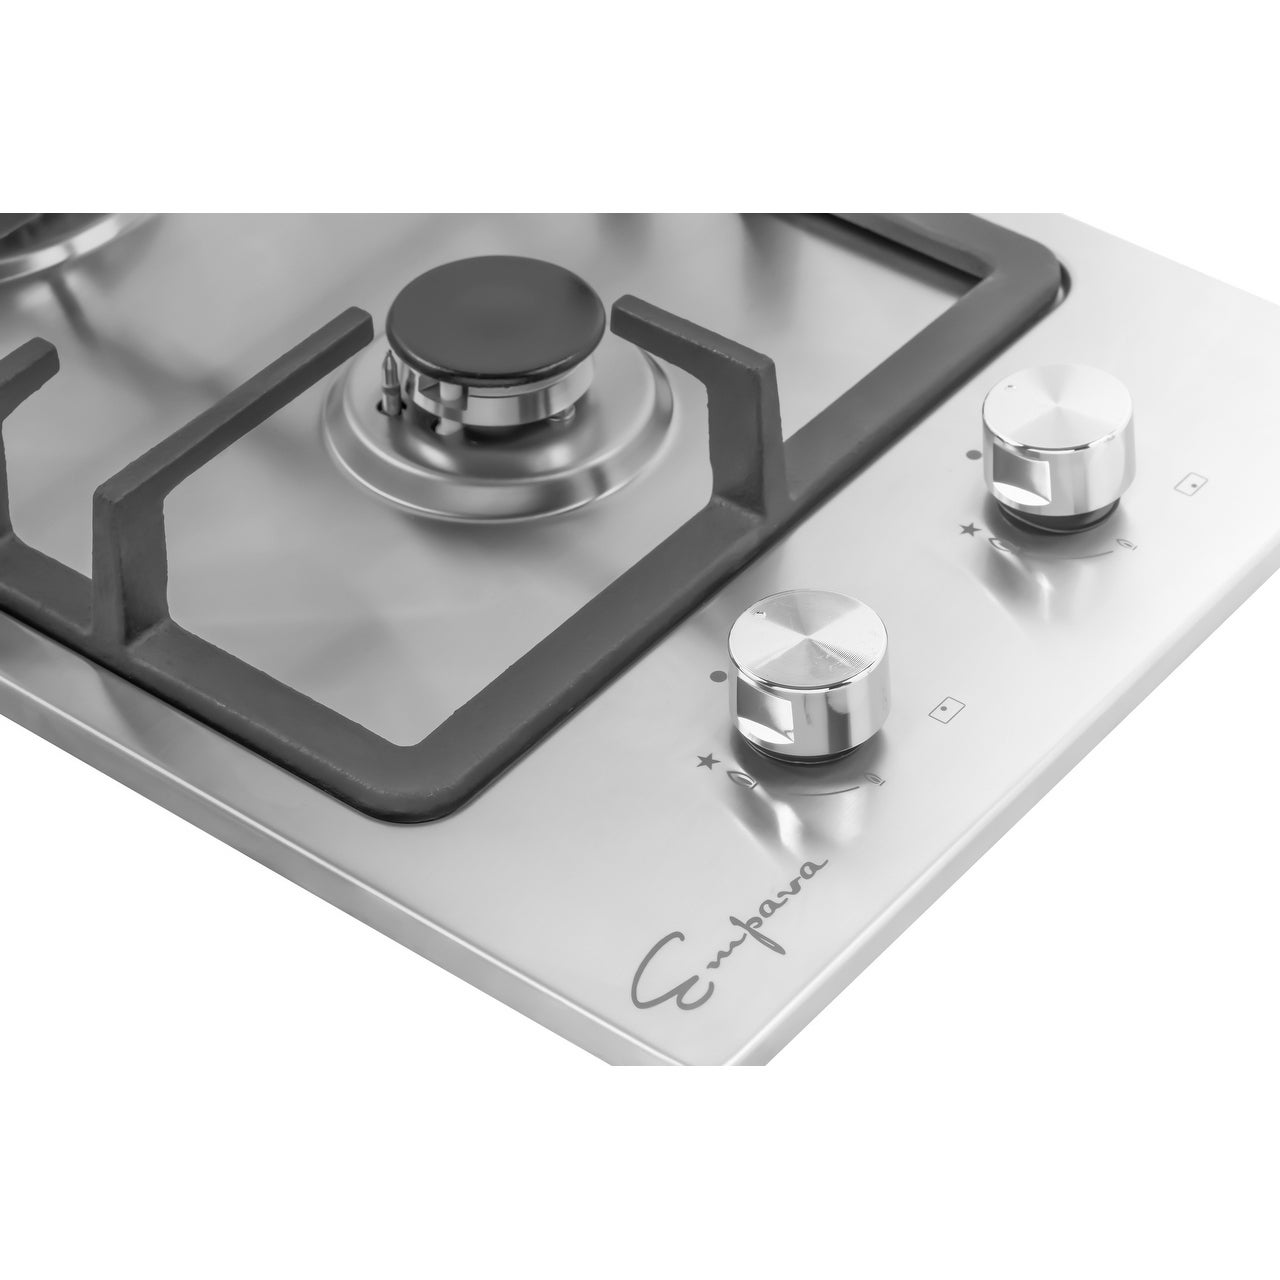 Empava 12 Stainless Steel 2 Italy Sabaf Burners Stove Top Gas Cooktop Free Shipping Today 22469063